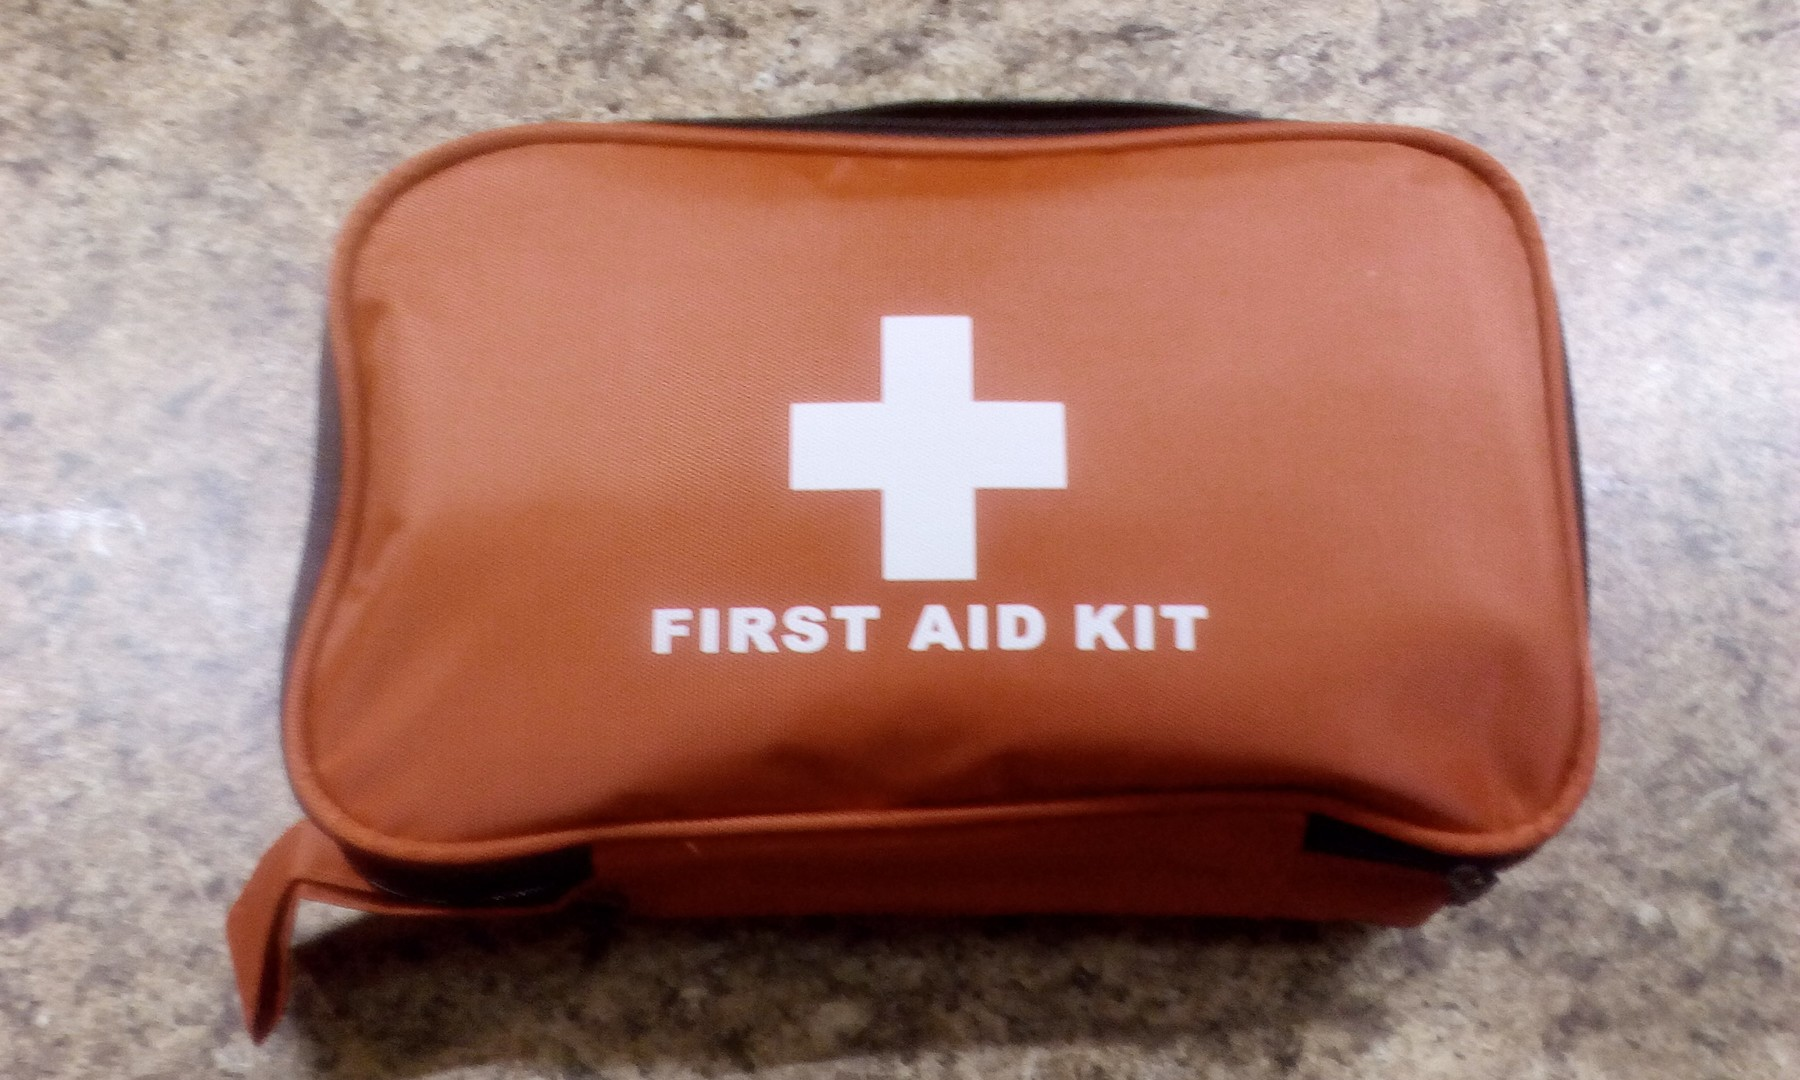 Full emergency first-aid kit for the car